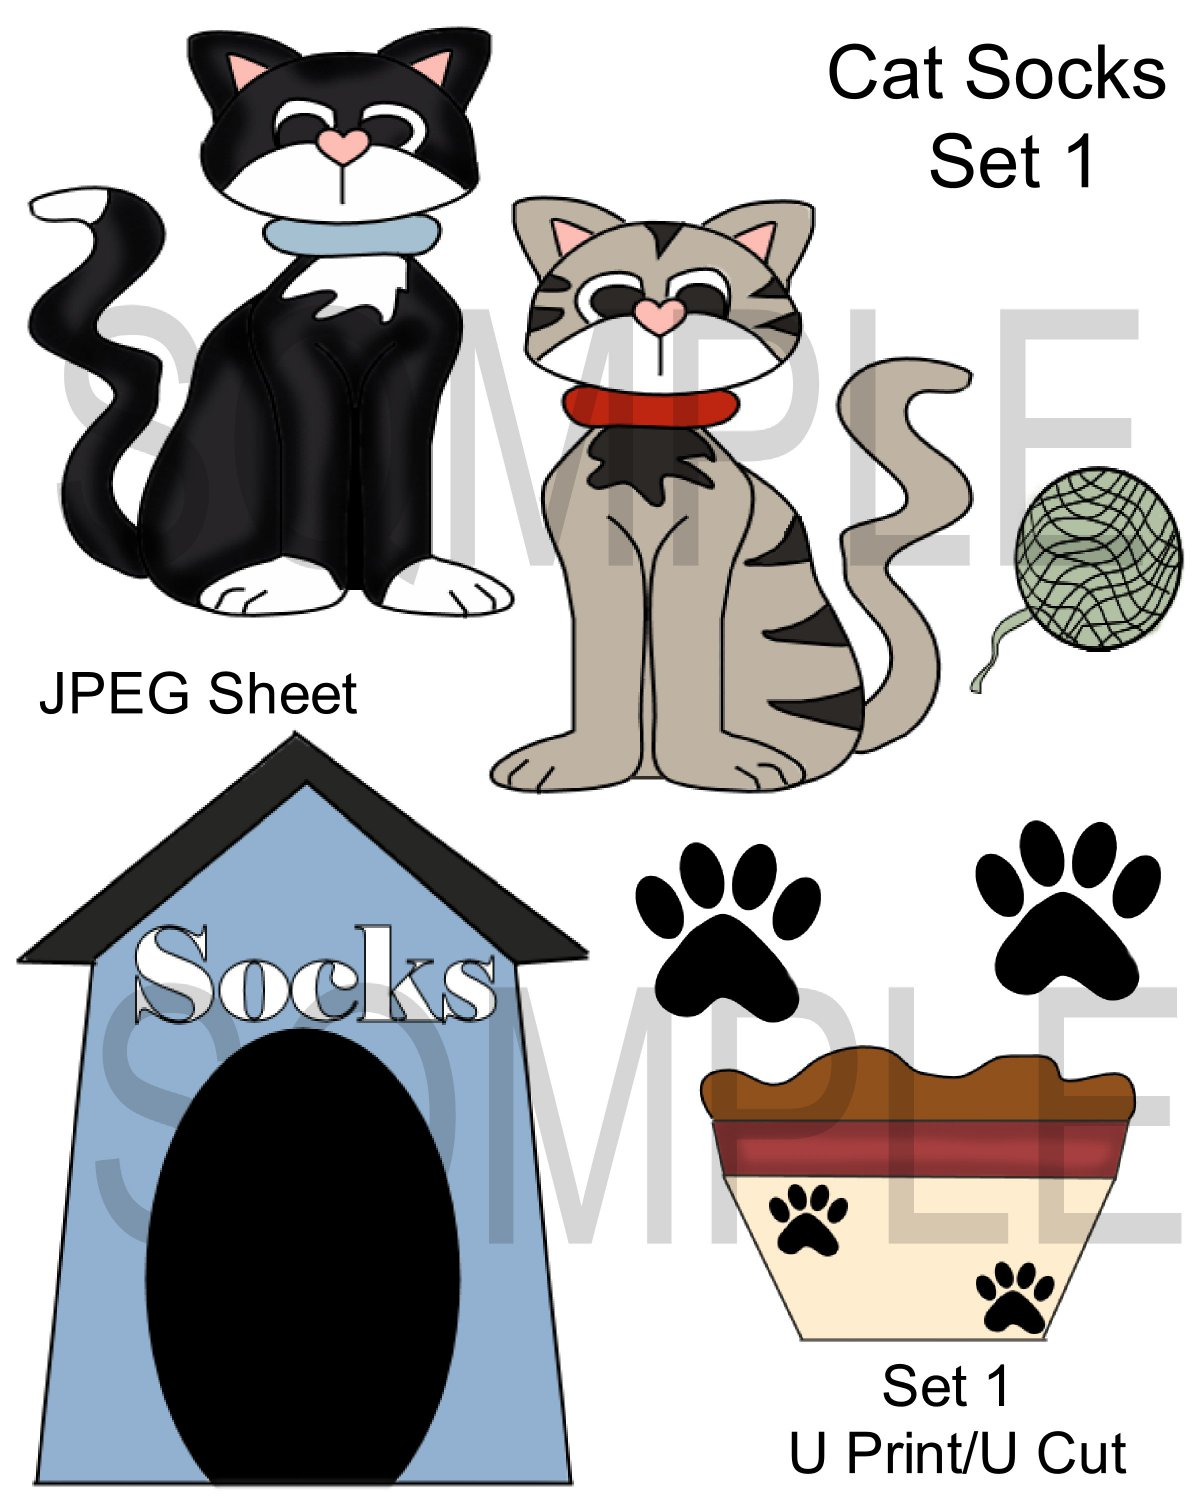 Cat Socks 1-Emailed as JPEG File-Commercial and Personal Use